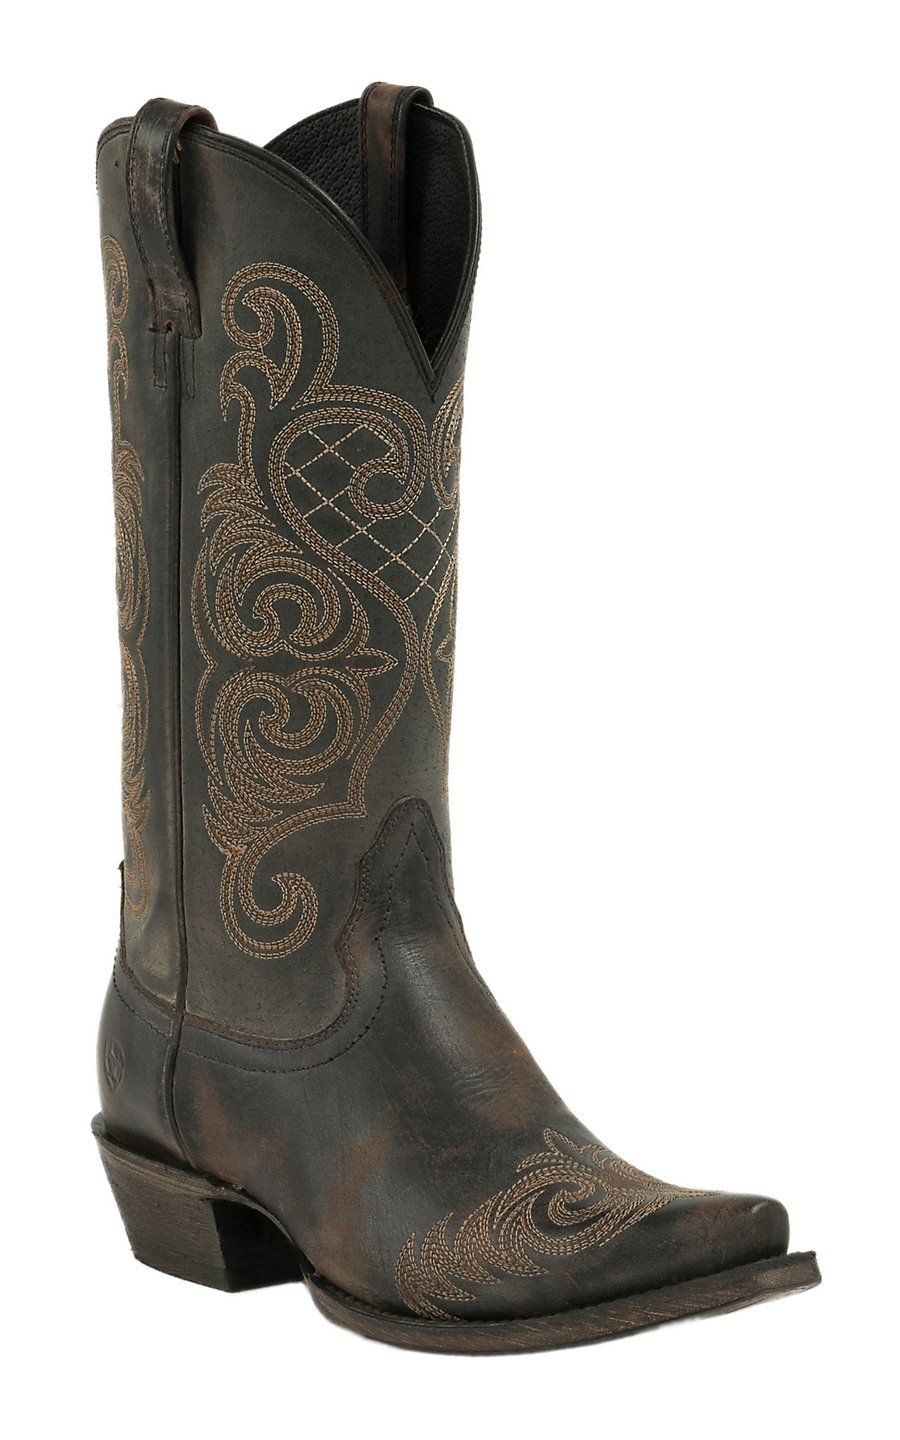 e043f0ee263 Ariat Rustic Black Bright Lights Snip Toe Western Boot | Boots ...